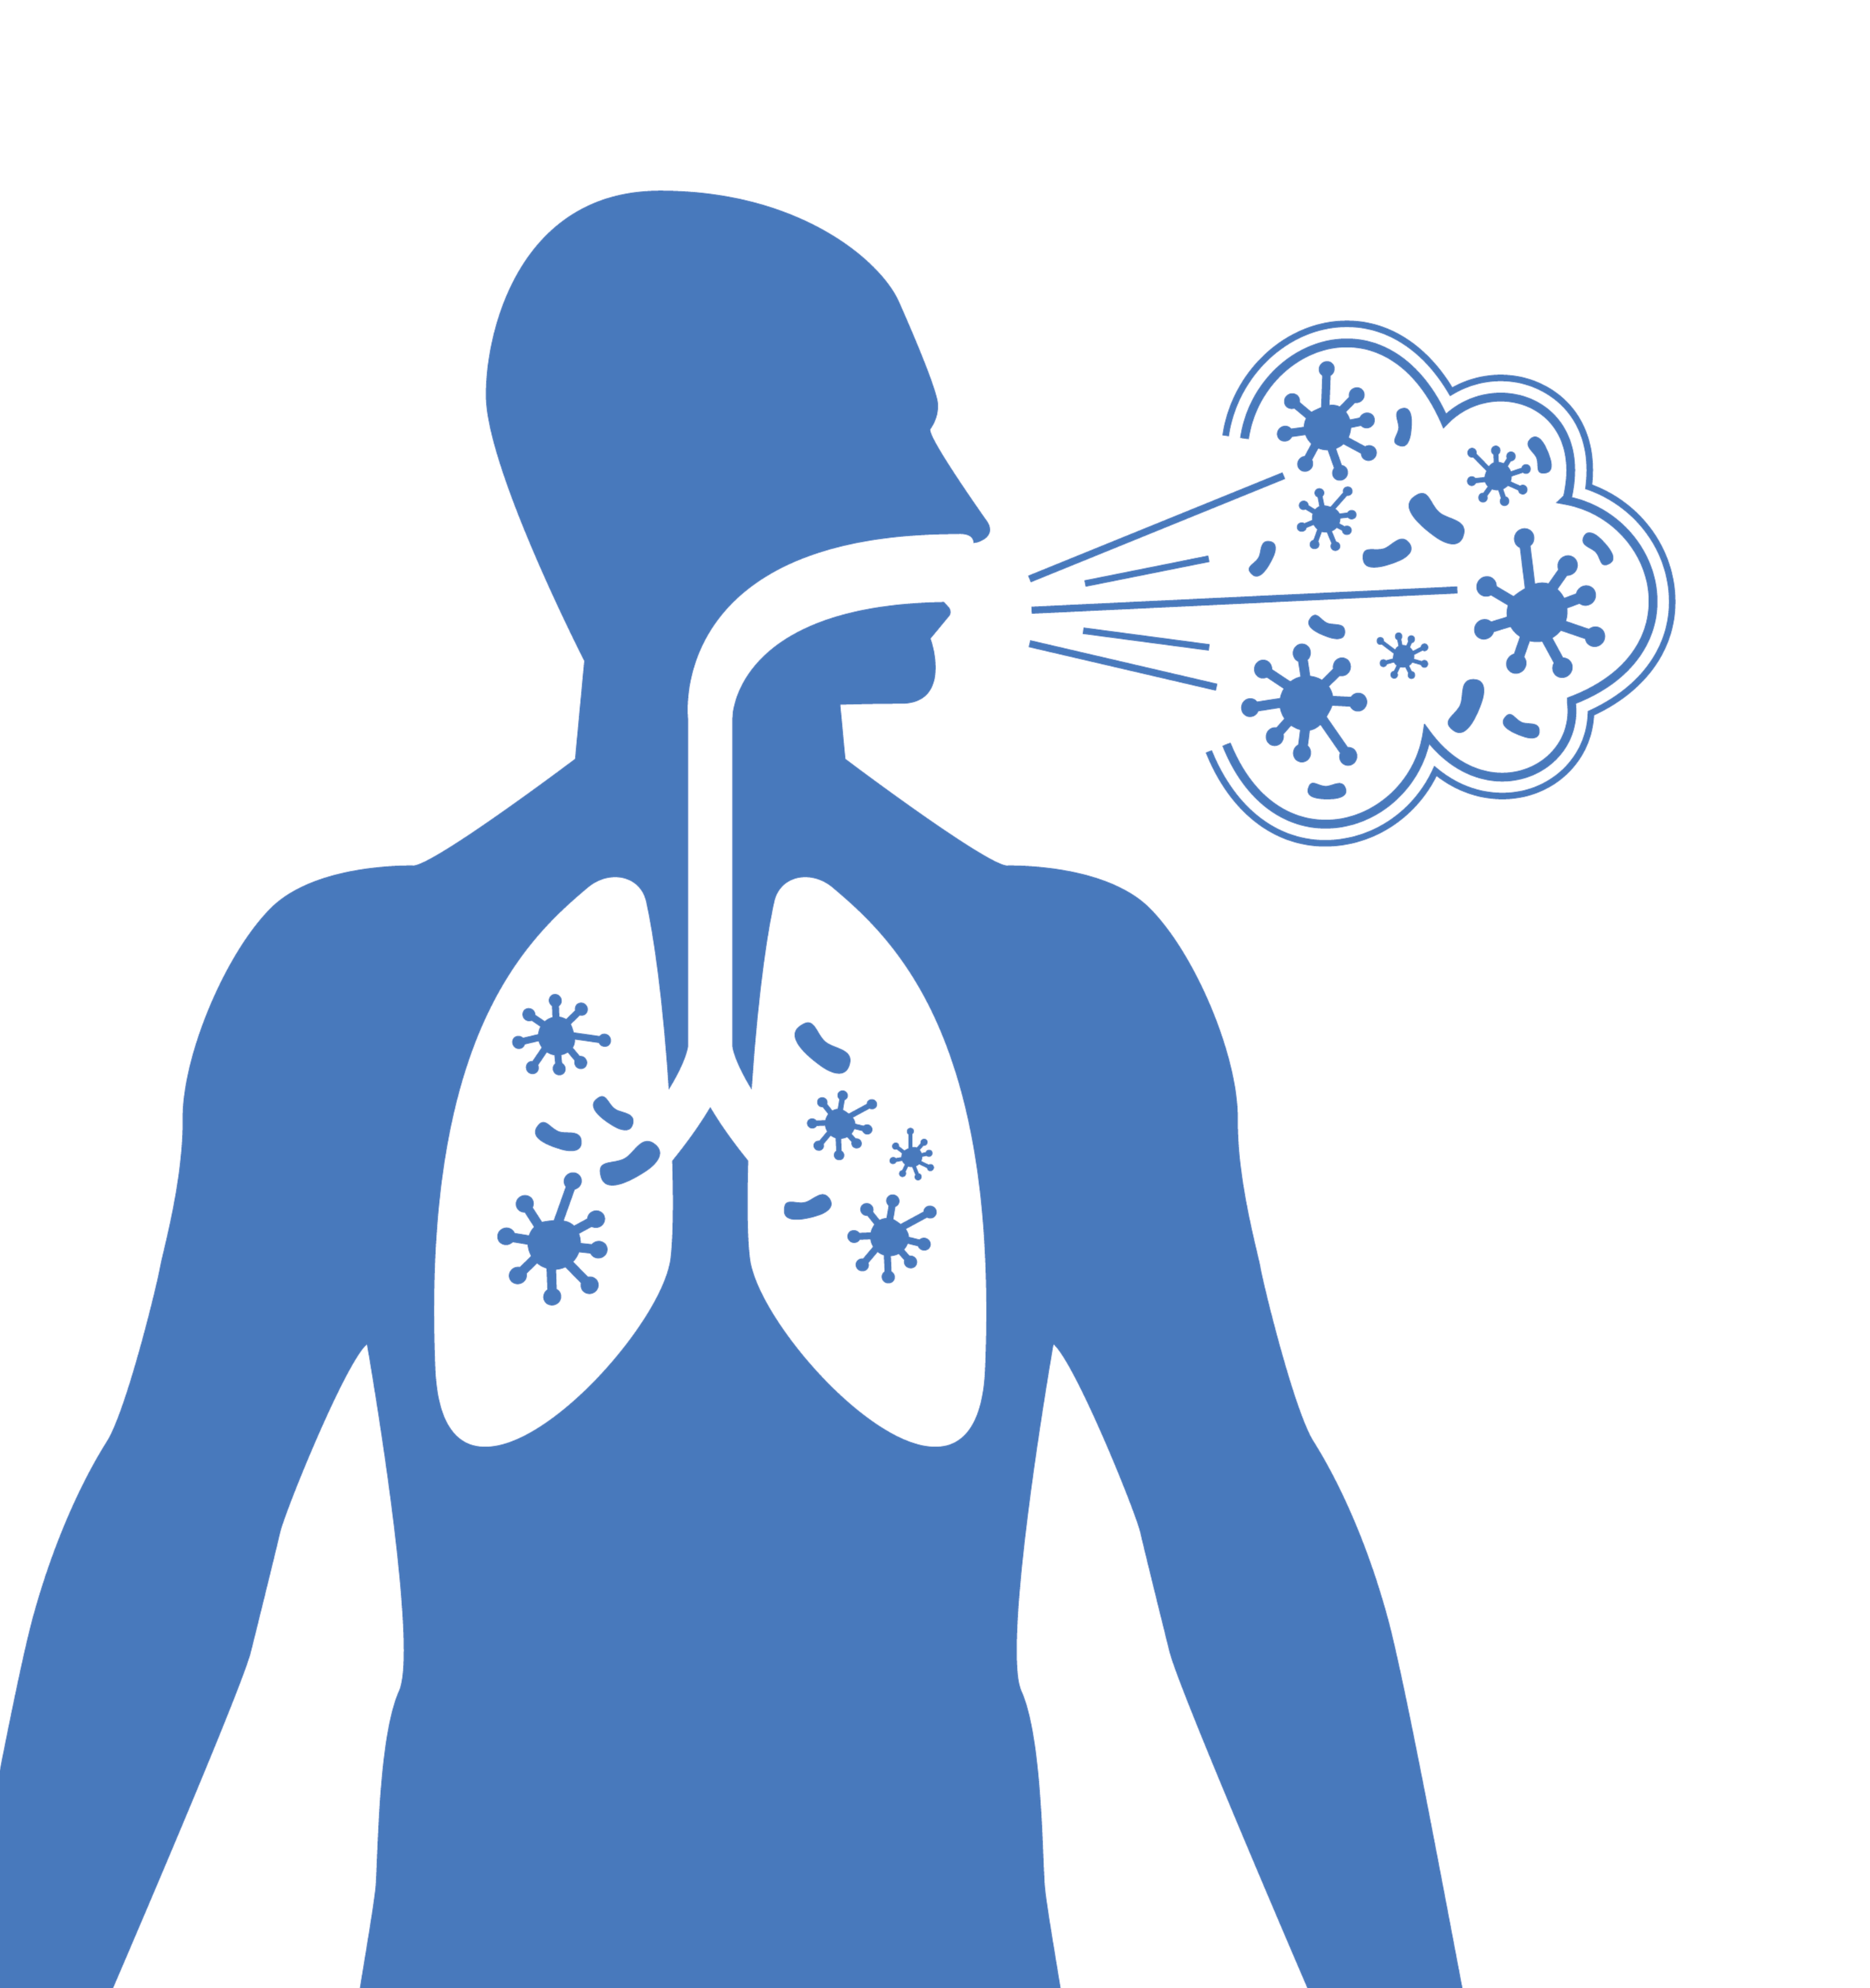 Overexposure to peracetic acid vapor can cause lung complications